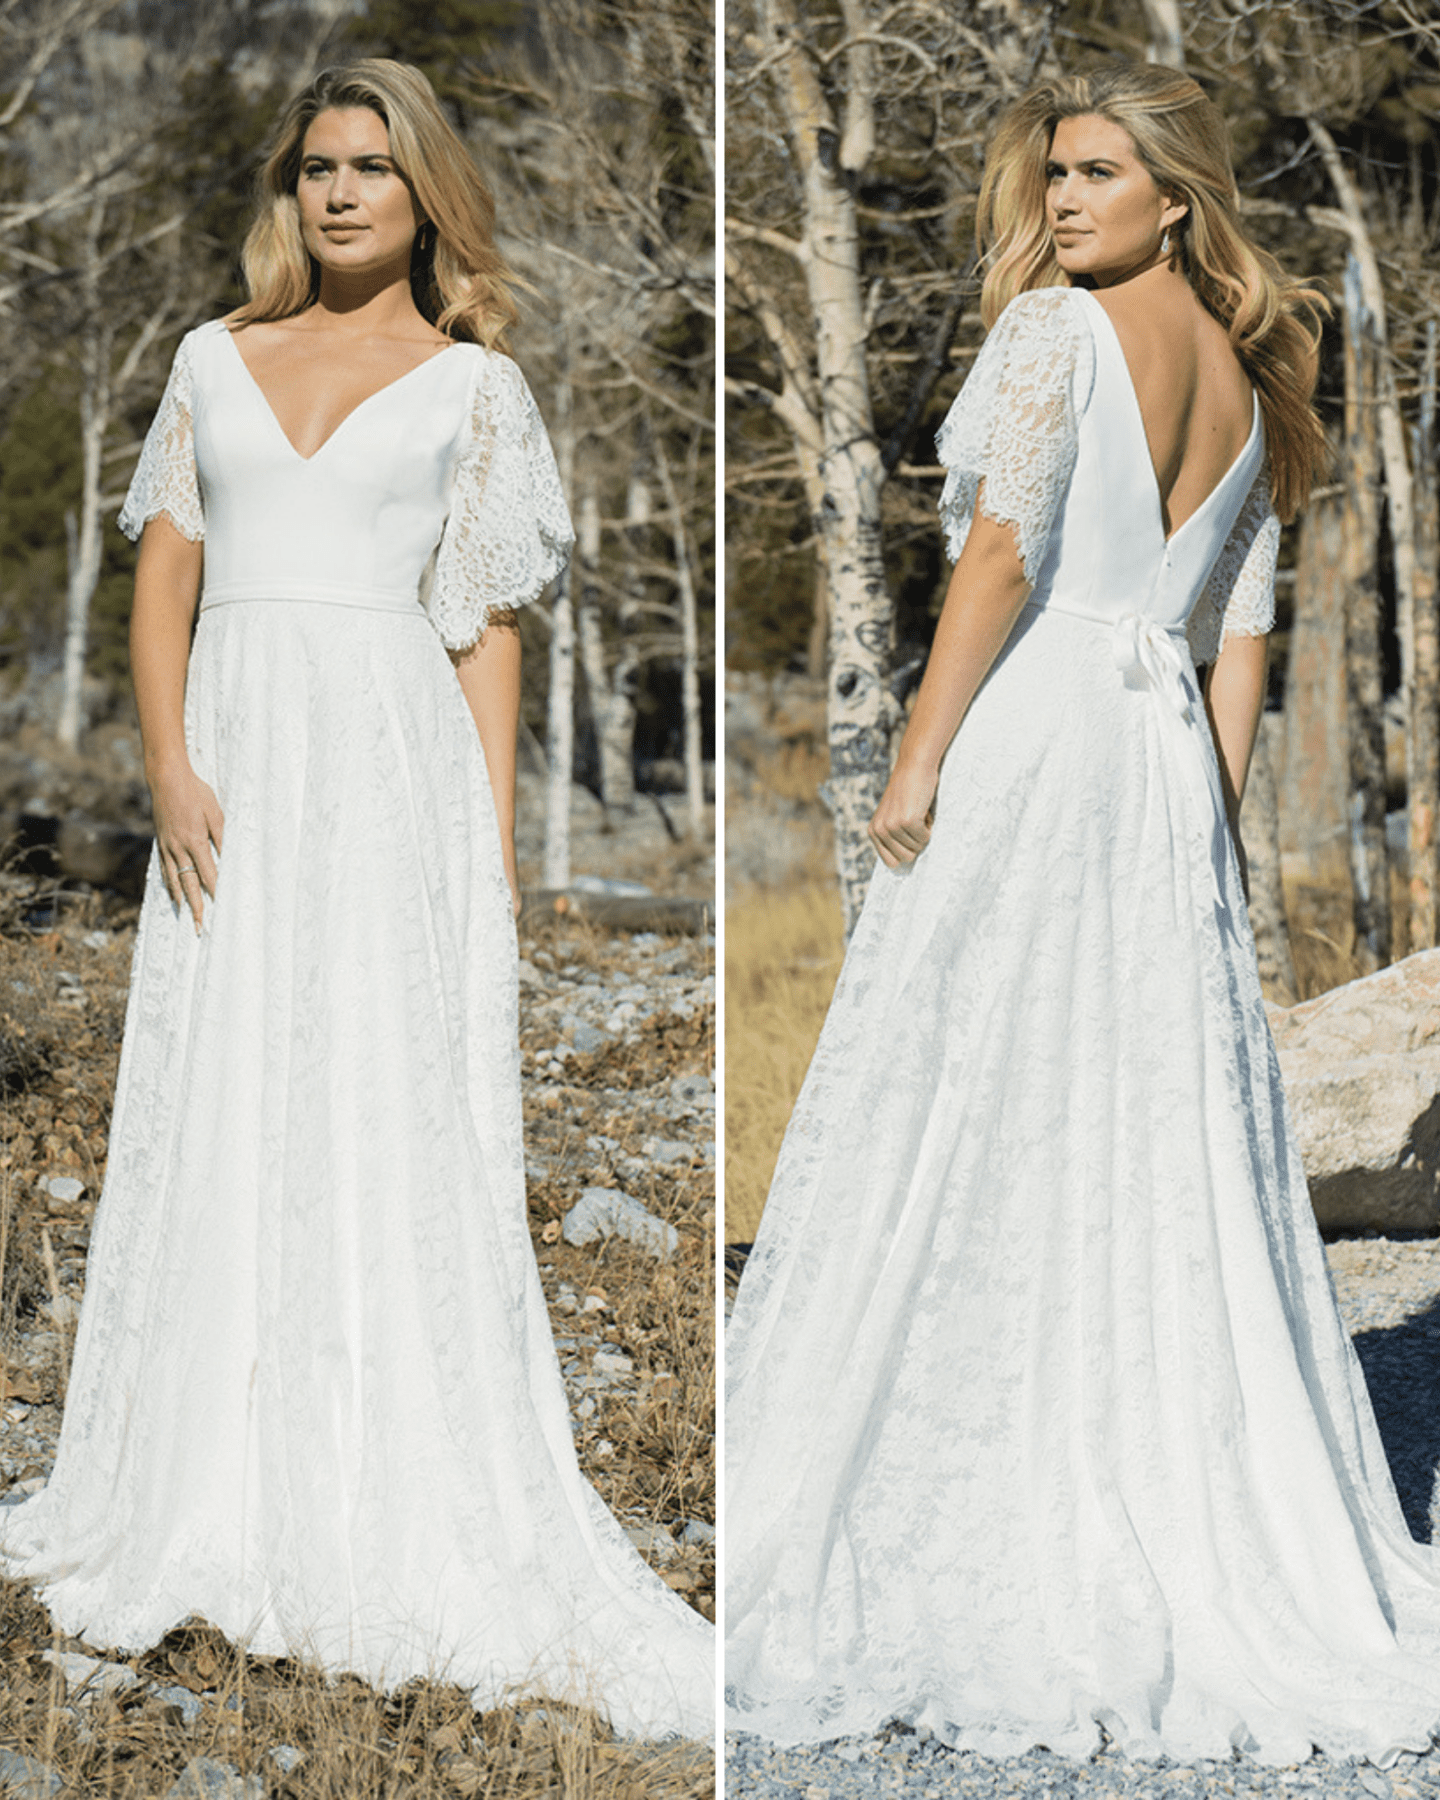 A-line wedding dress with V-neck and sleeves